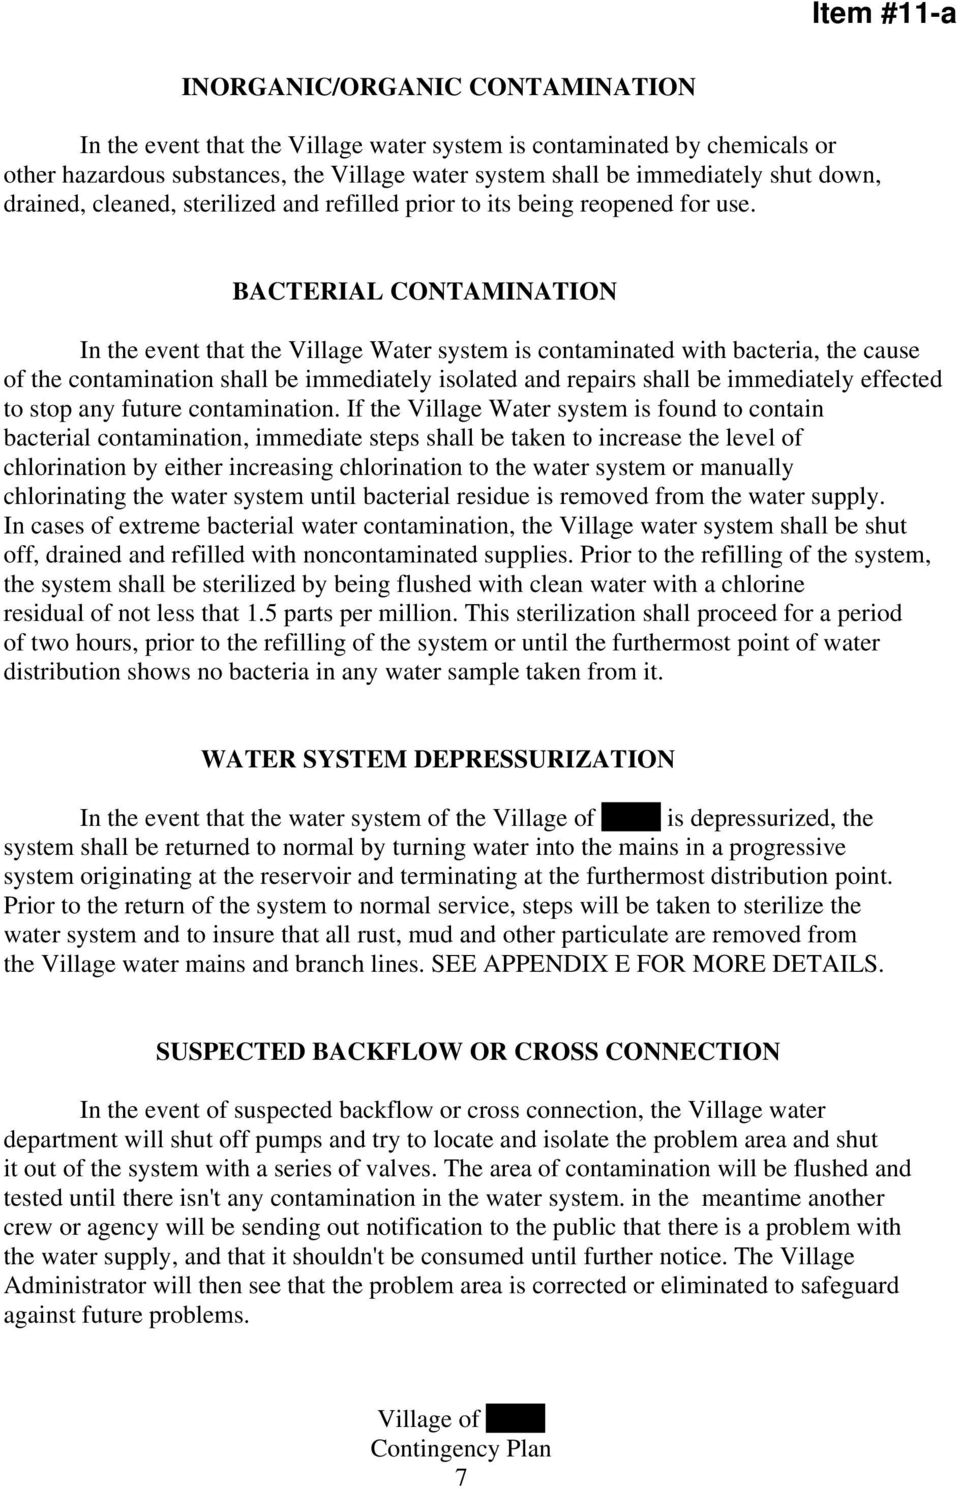 BACTERIAL CONTAMINATION In the event that the Village Water system is contaminated with bacteria, the cause of the contamination shall be immediately isolated and repairs shall be immediately